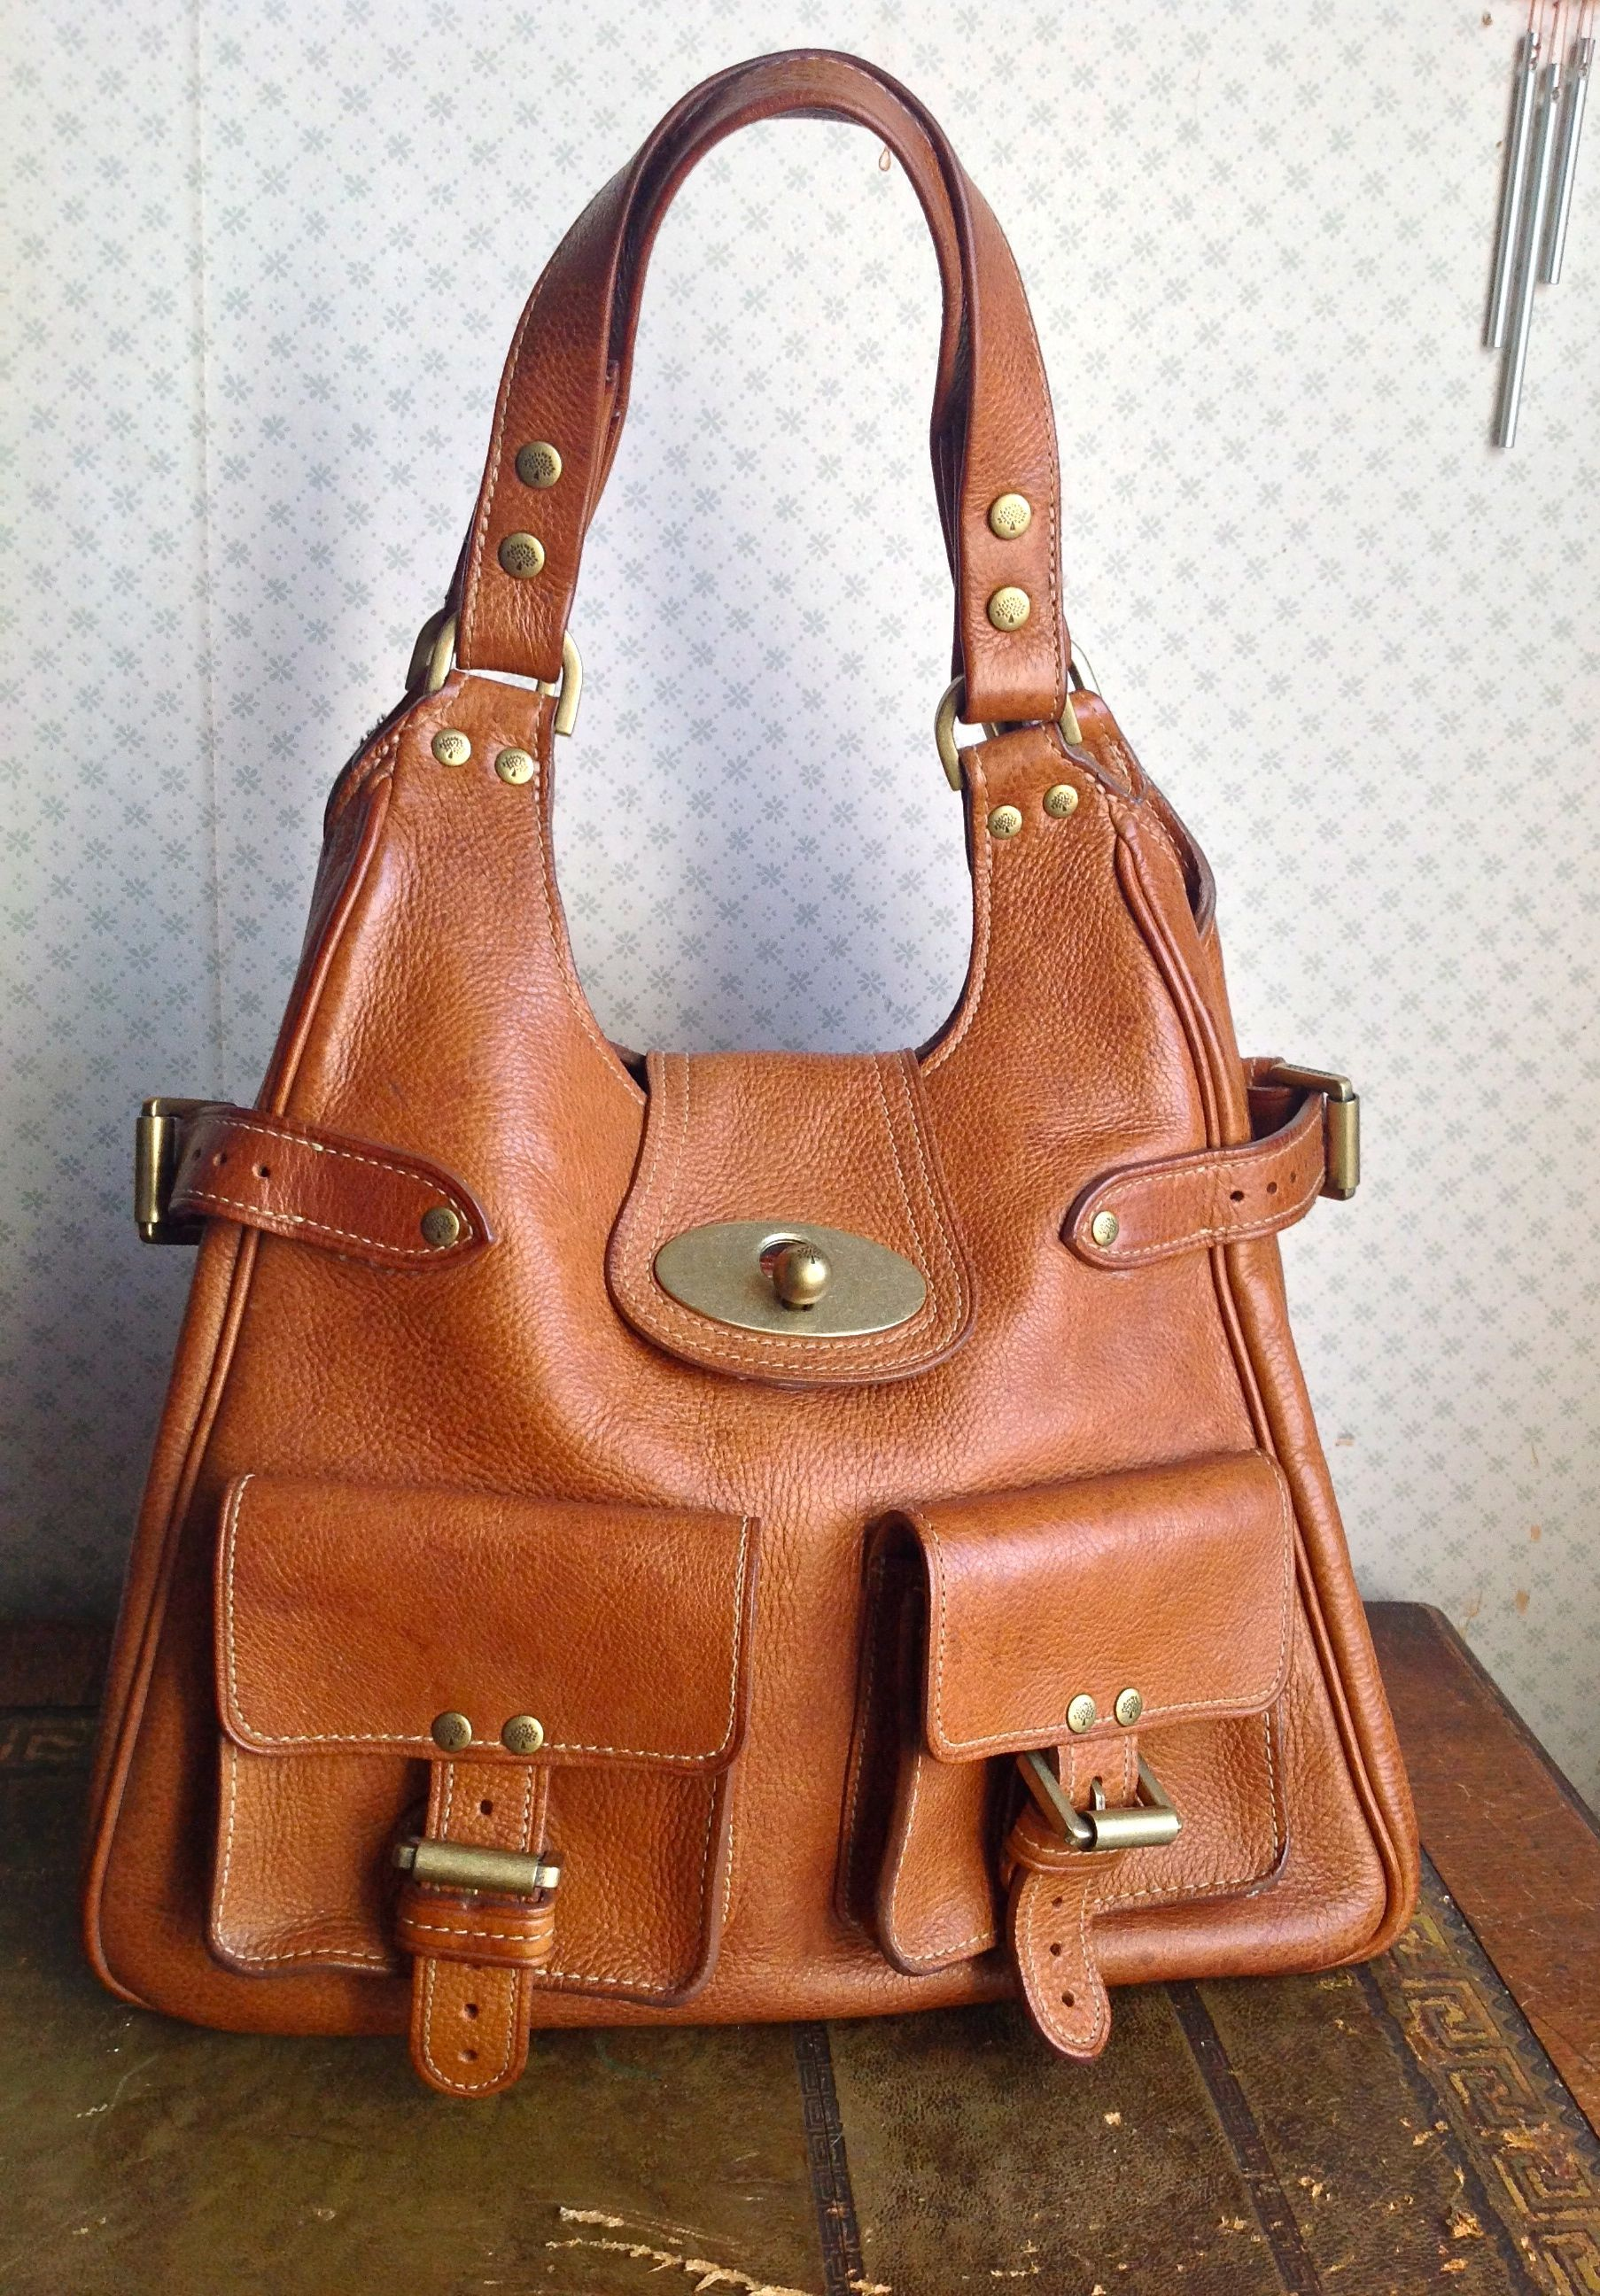 86045eb23cc Mulberry Annie   love it in 2019   Pinterest   Mulberry bag, Bags ...